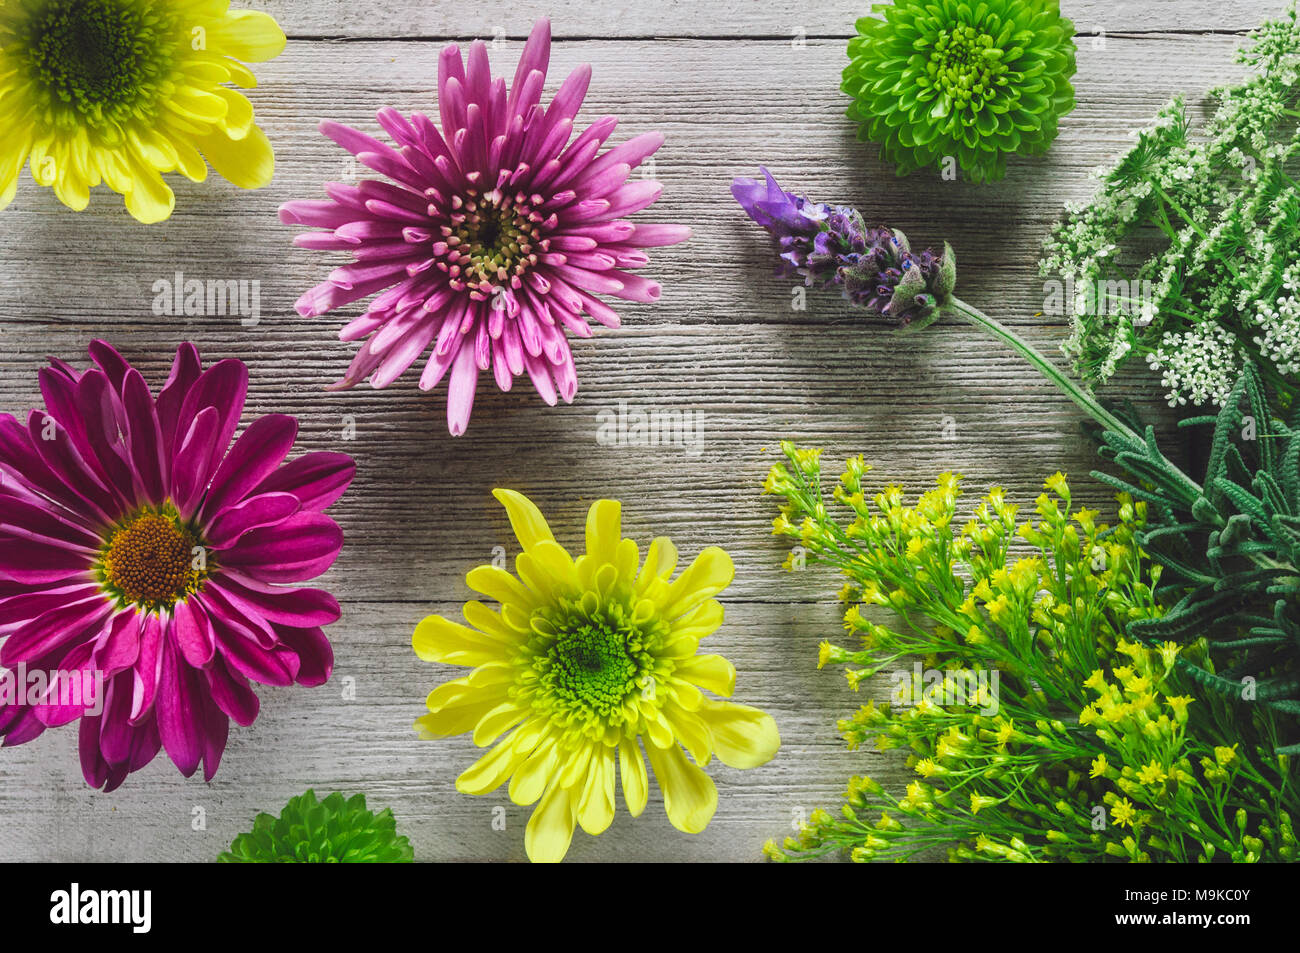 Spring Botanicals on White Rustic Table including Chrysanthemum and Lavender - Stock Image